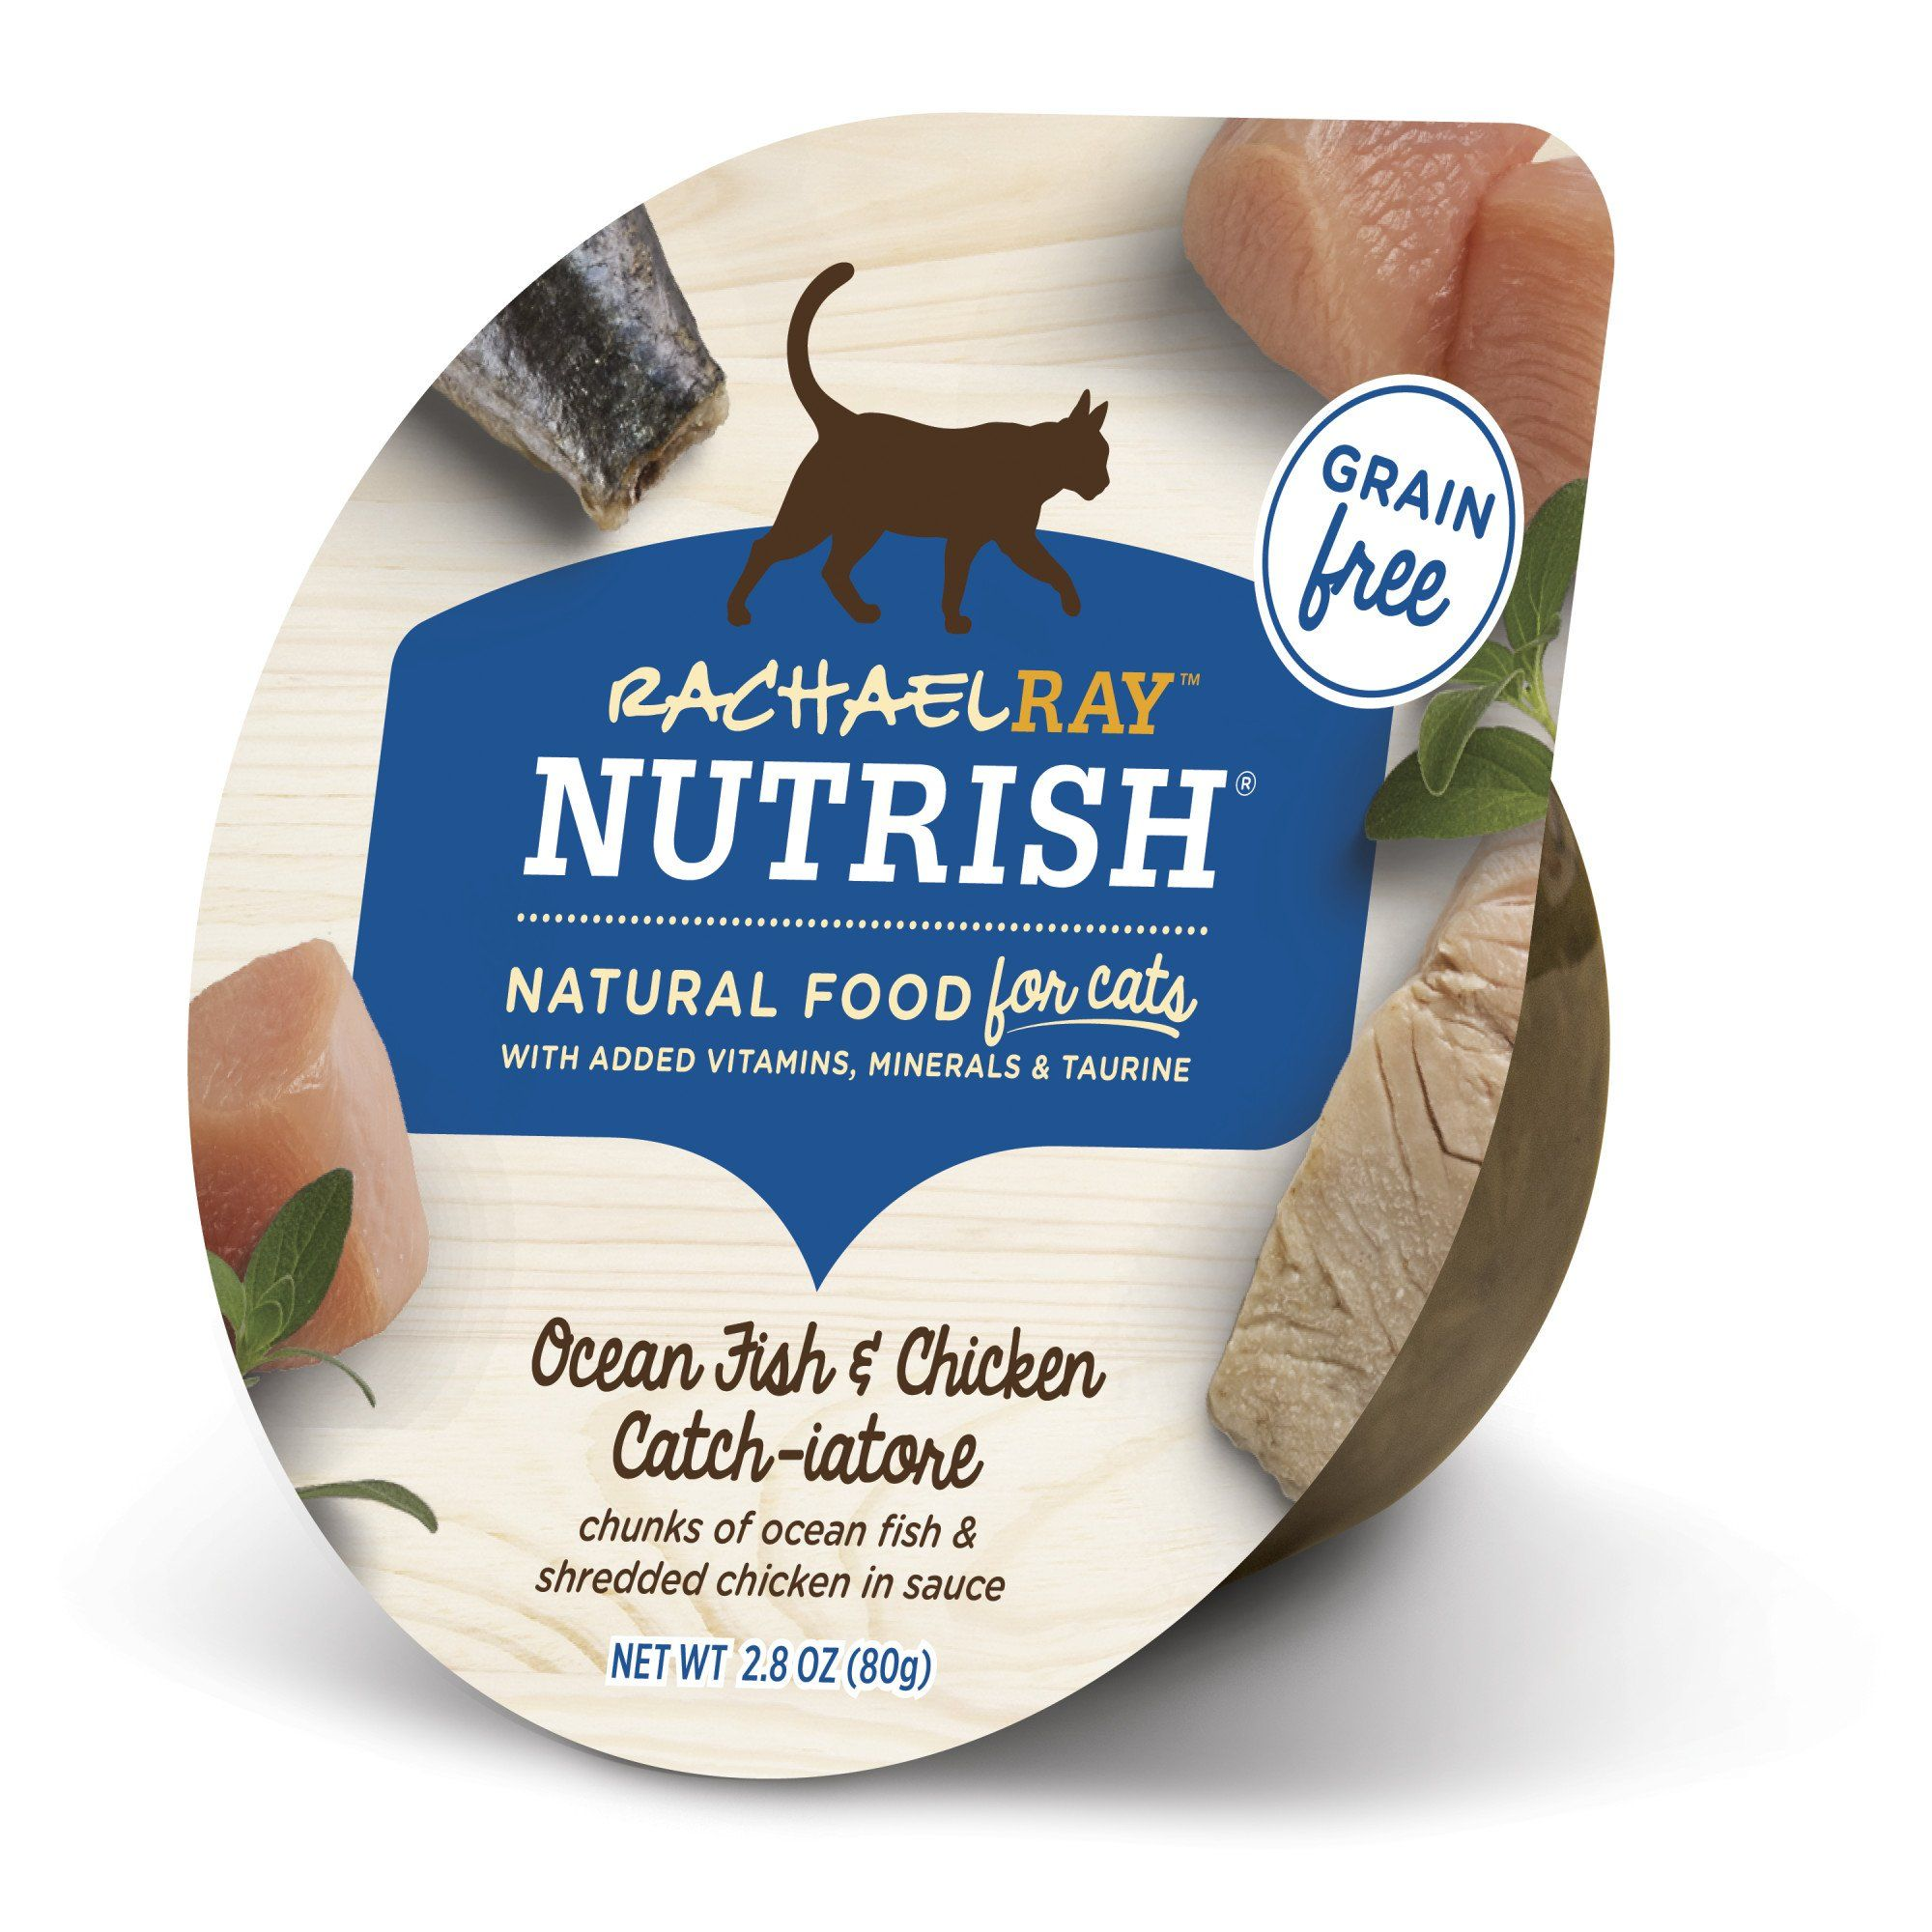 Rachael Ray Nutrish Natural Grain Free Ocean Fish Chicken Catch